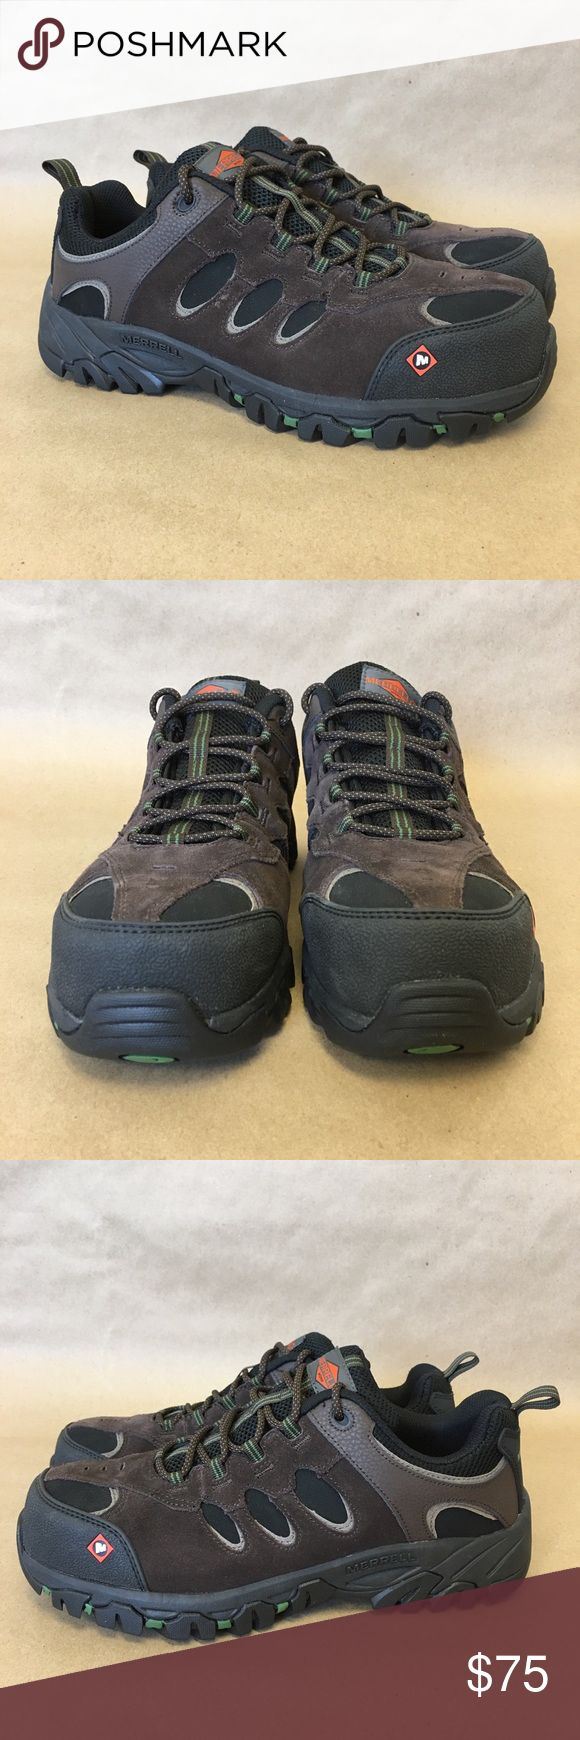 Merrell Men's Ridgepass Bolt Wide Safety Shoes CT New with